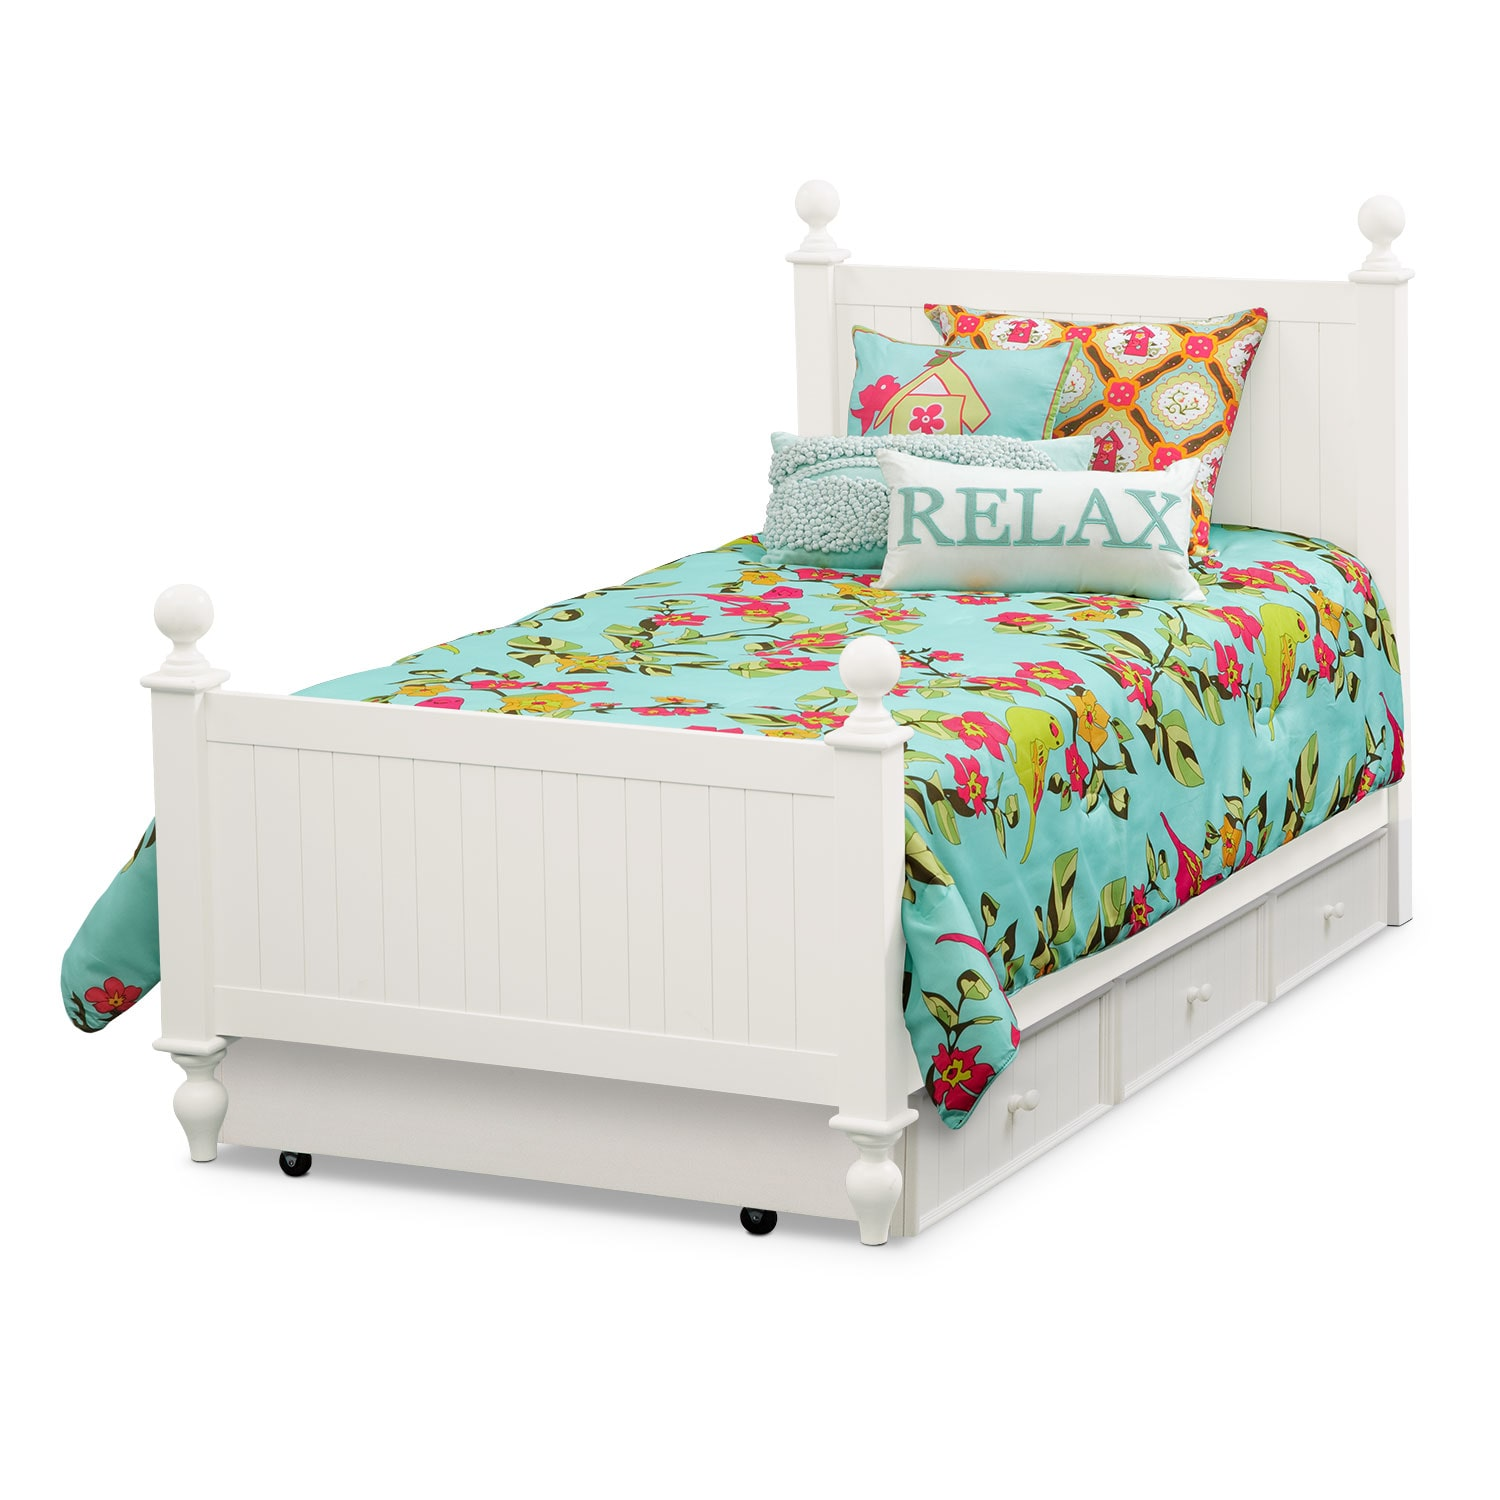 Colorworks Twin Bed With Trundle - White